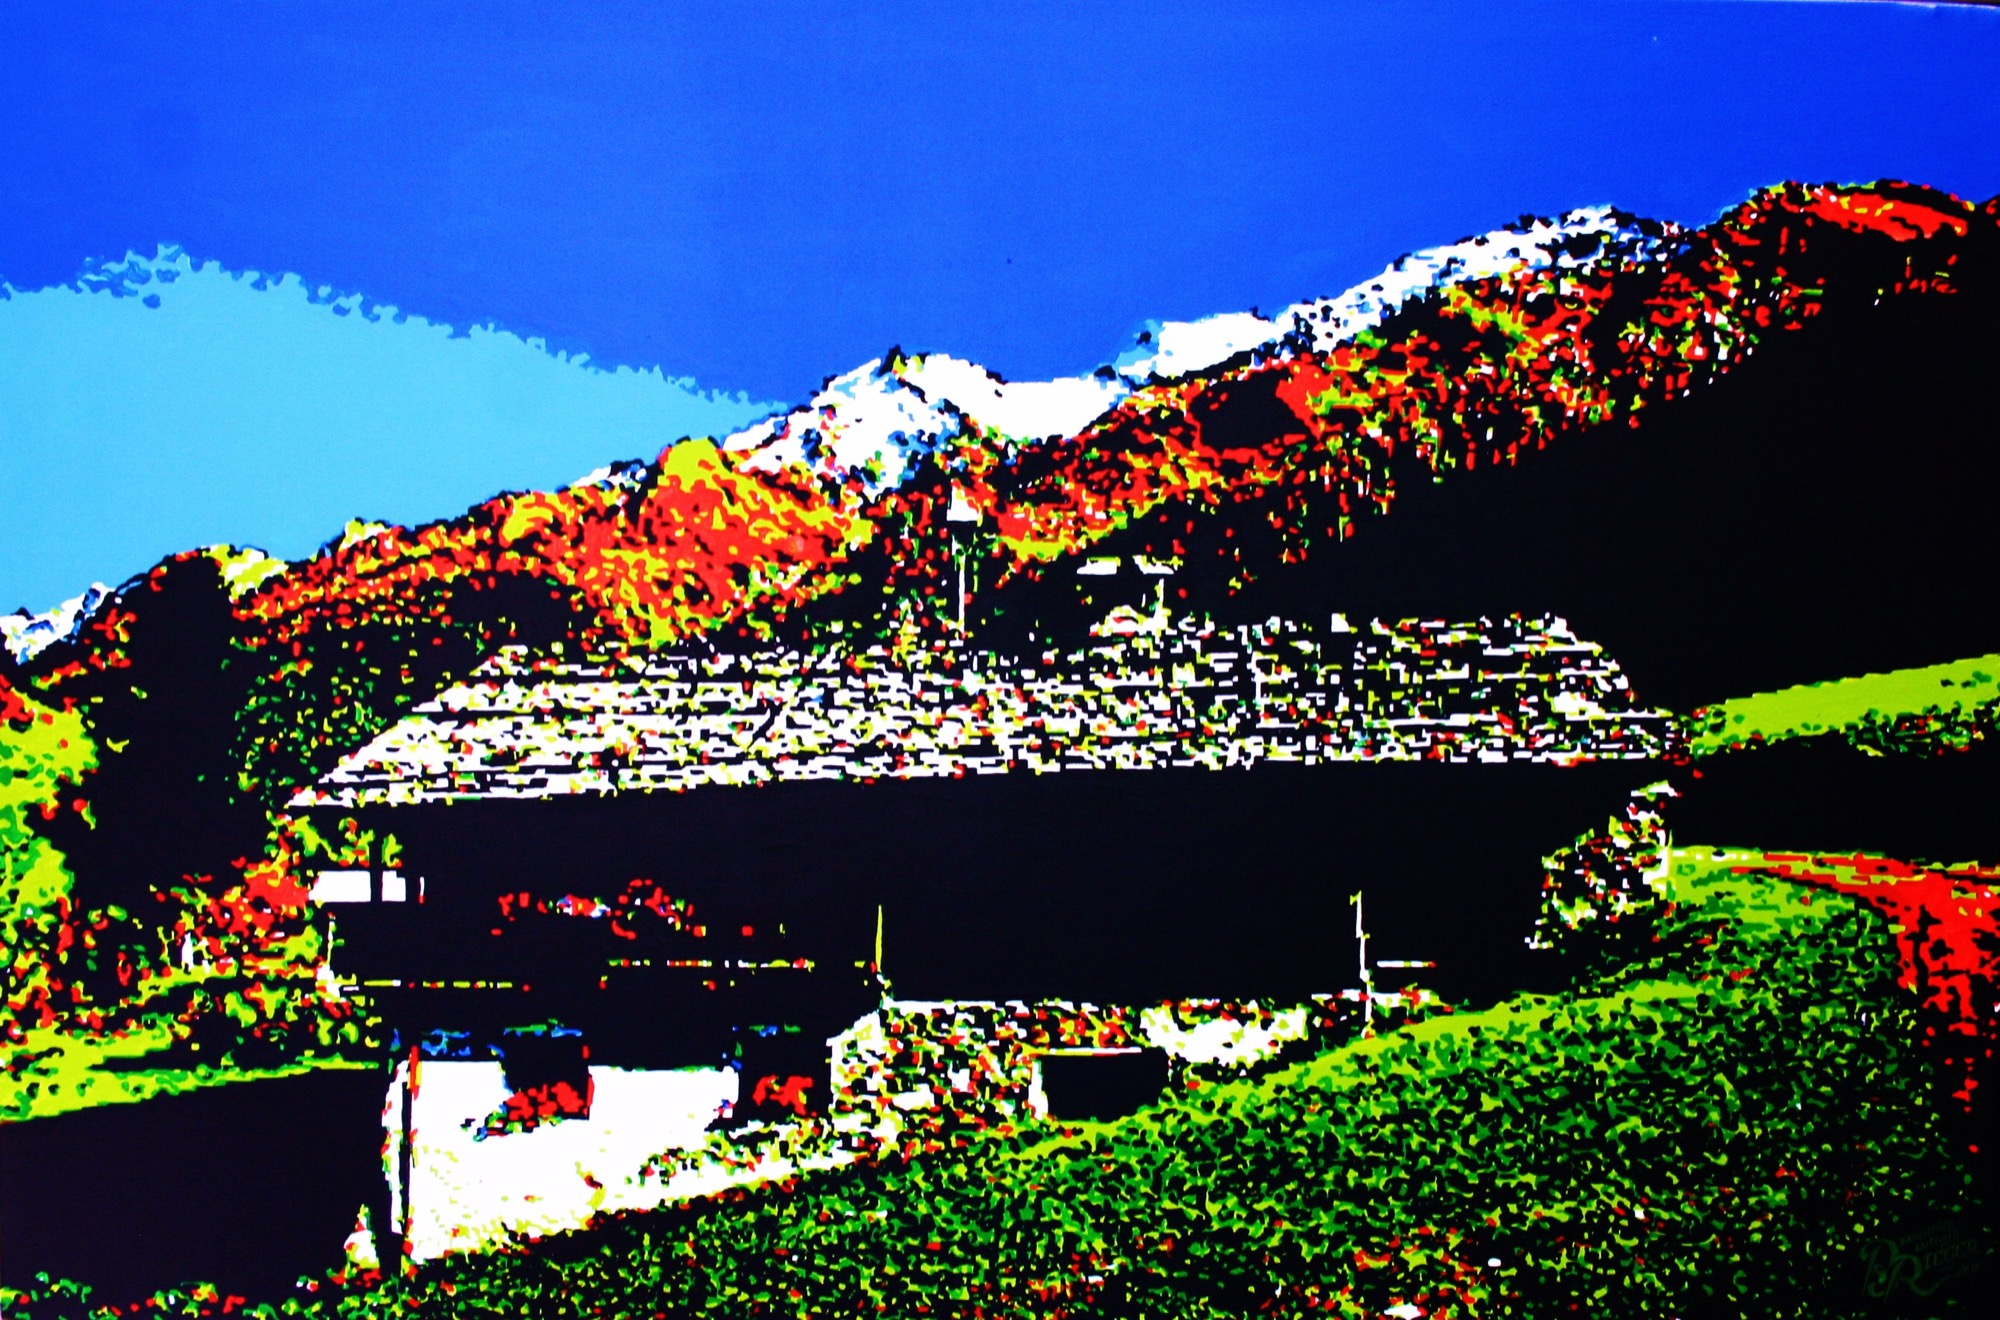 Even Rieger's funky alpine pop art is deeply rooted in Bavarian tradition